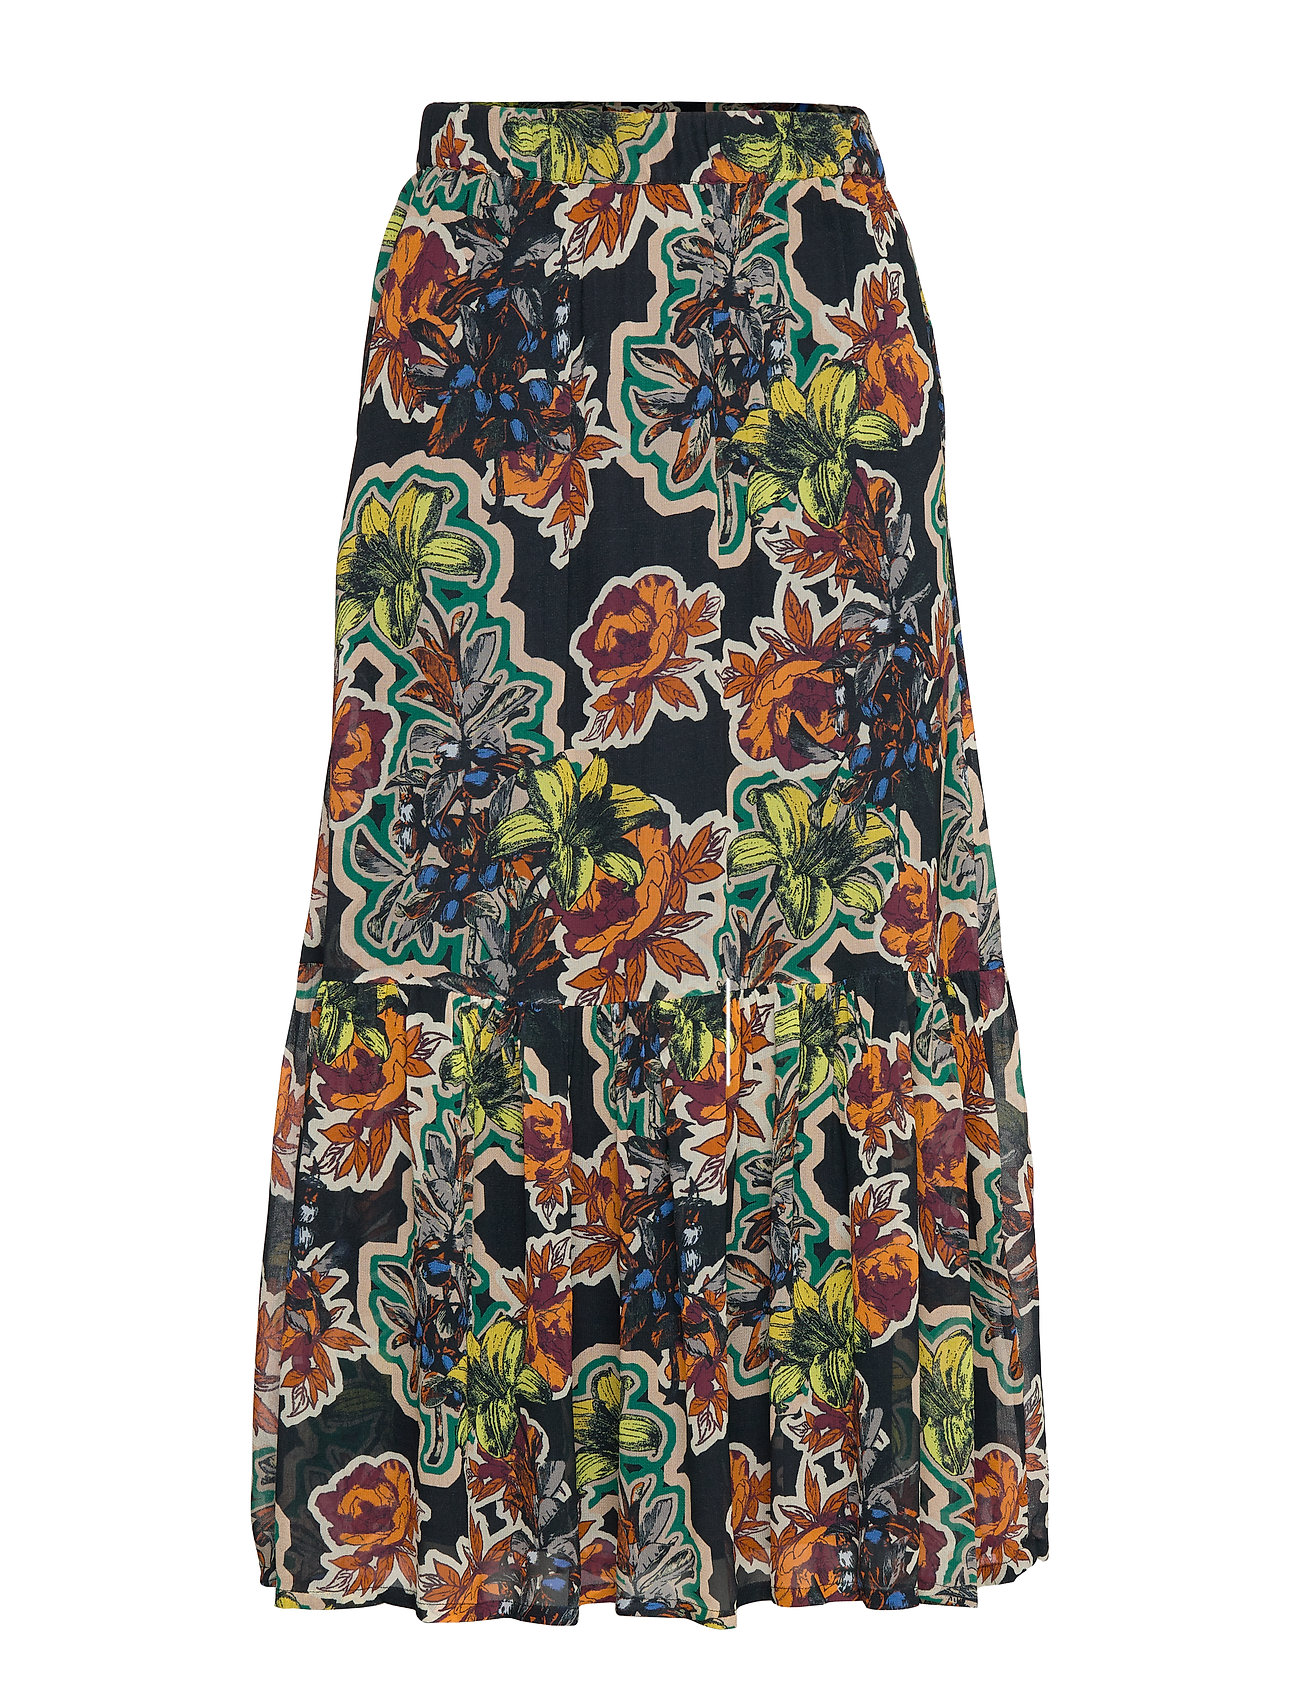 Gestuz FloritaGZ skirt MA19 - BLACK GRAFITI FLOWER